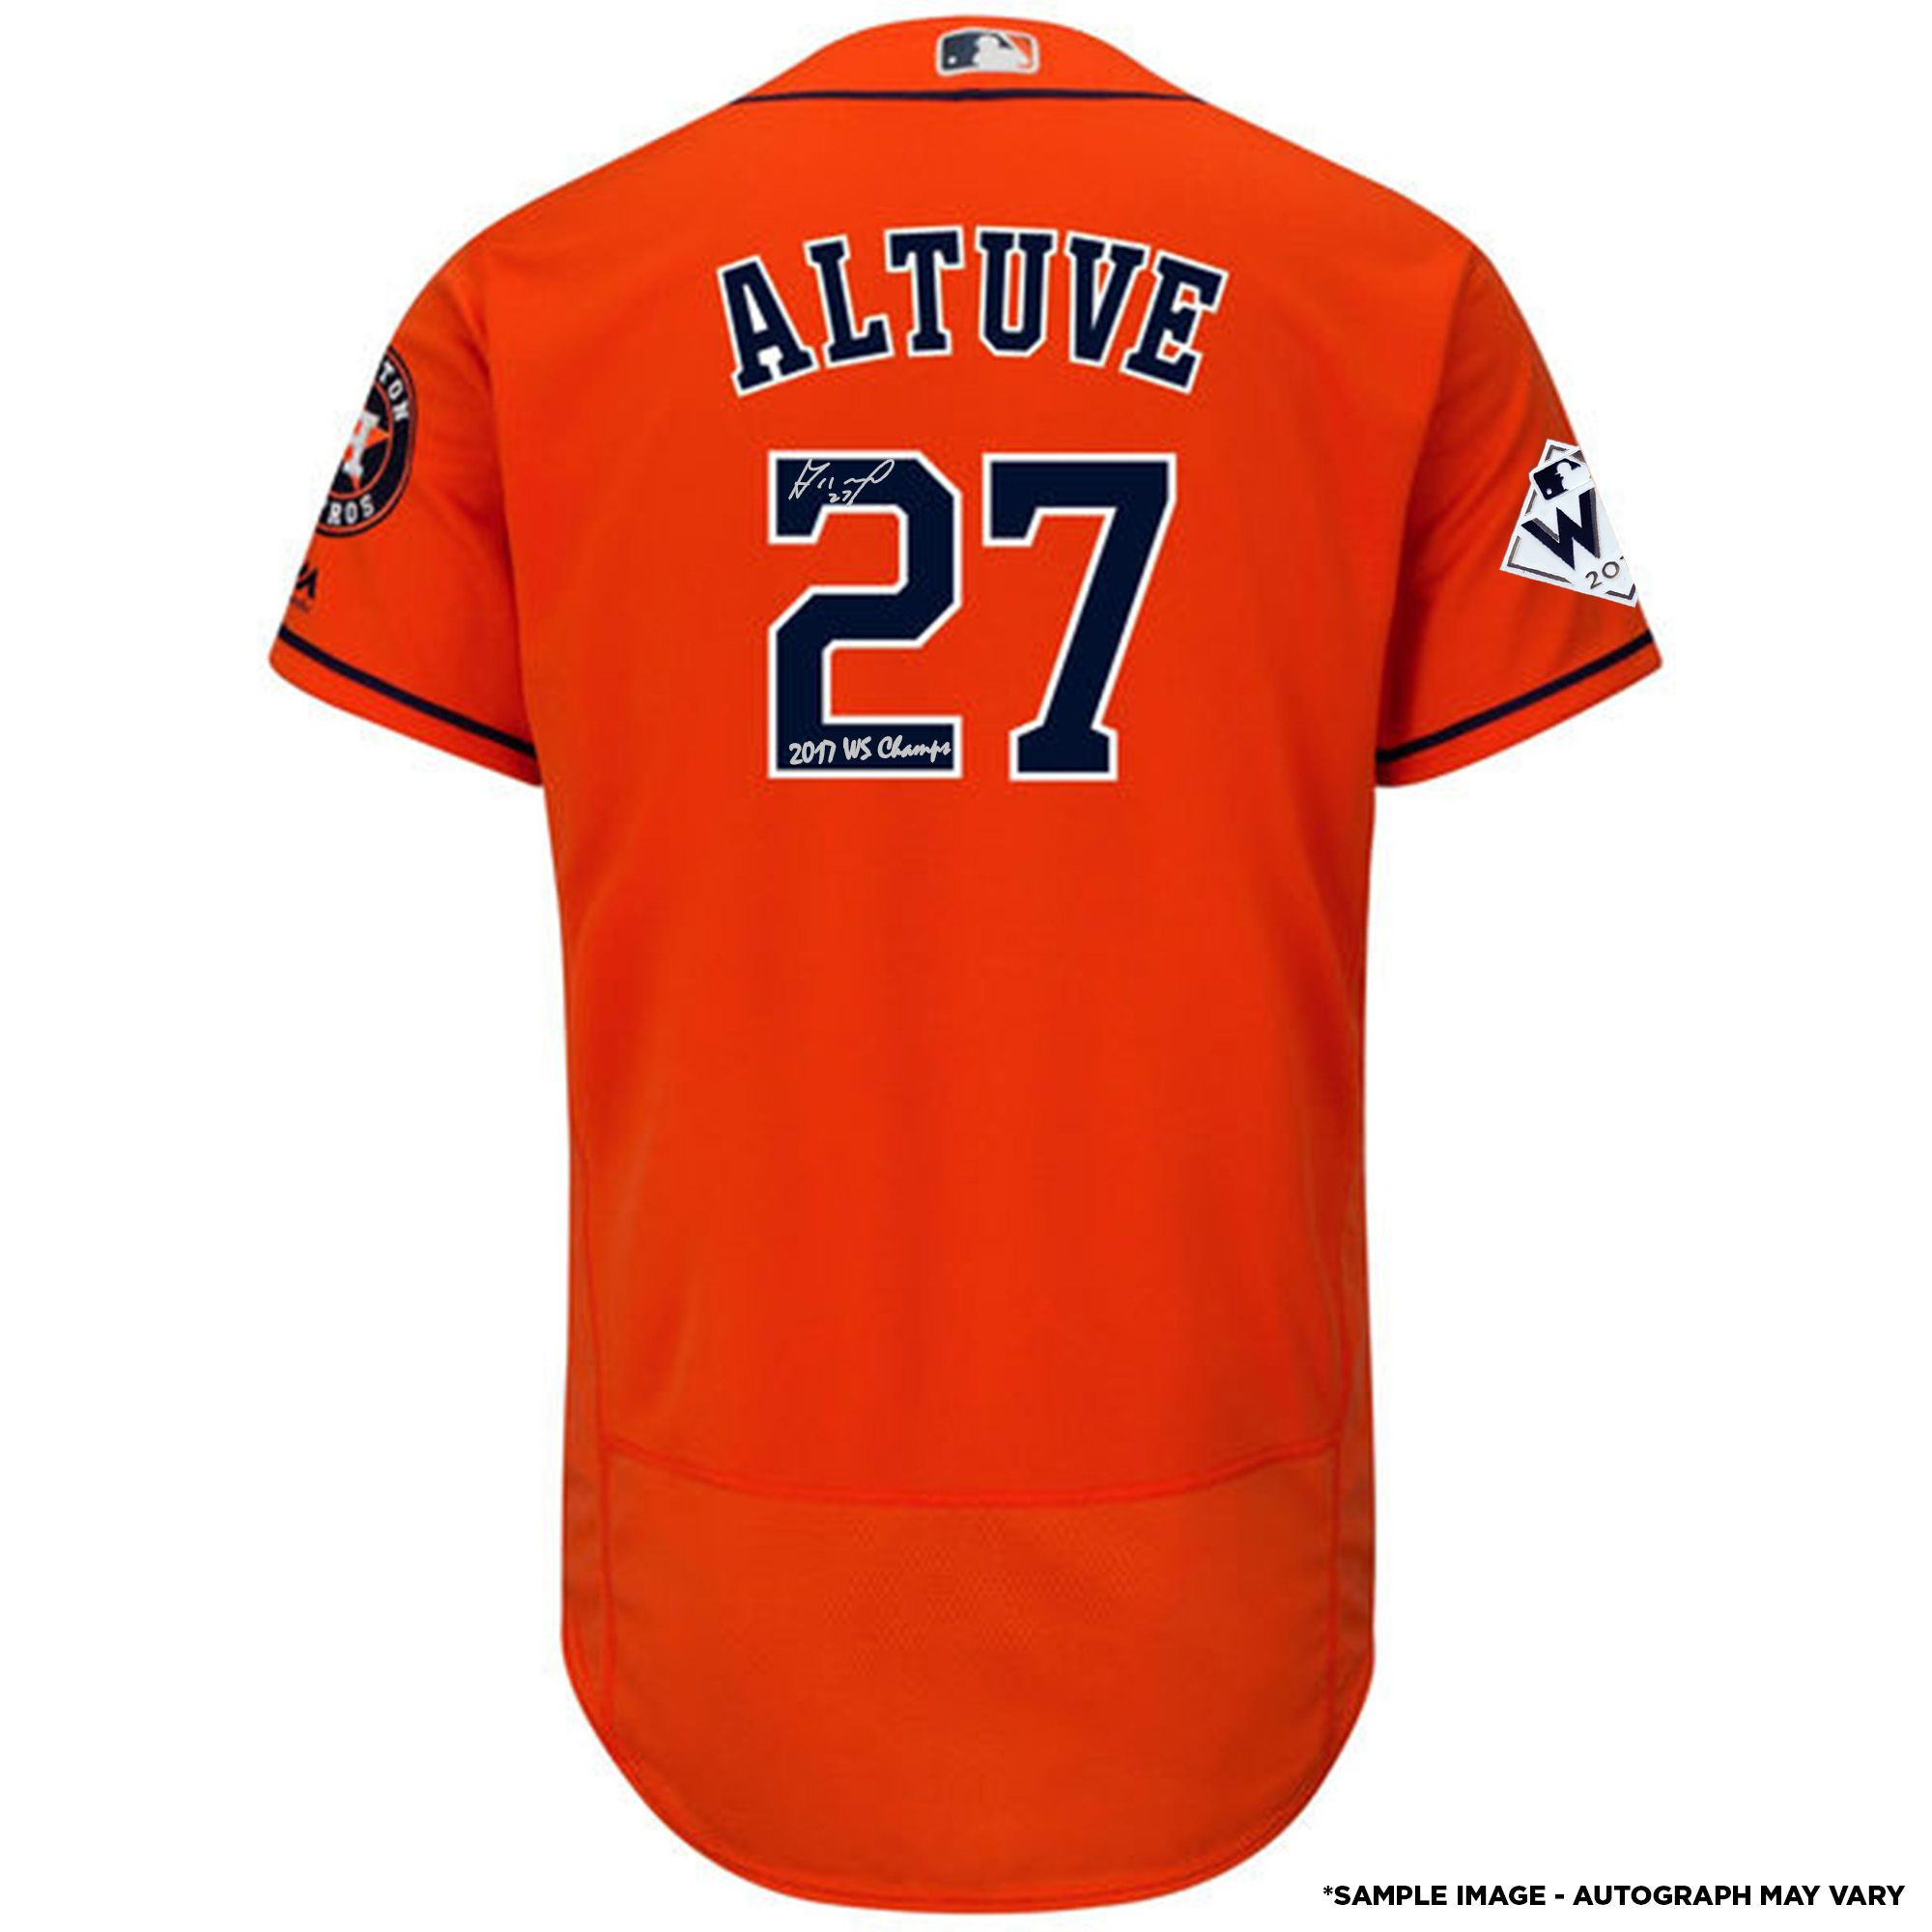 Houston Astros Jose Altuve Fanatics Authentic 2017 MLB World Series  Champions Autographed Majestic World Series Orange Authentic Jersey with  2017 WS Champs ... bc5053bee